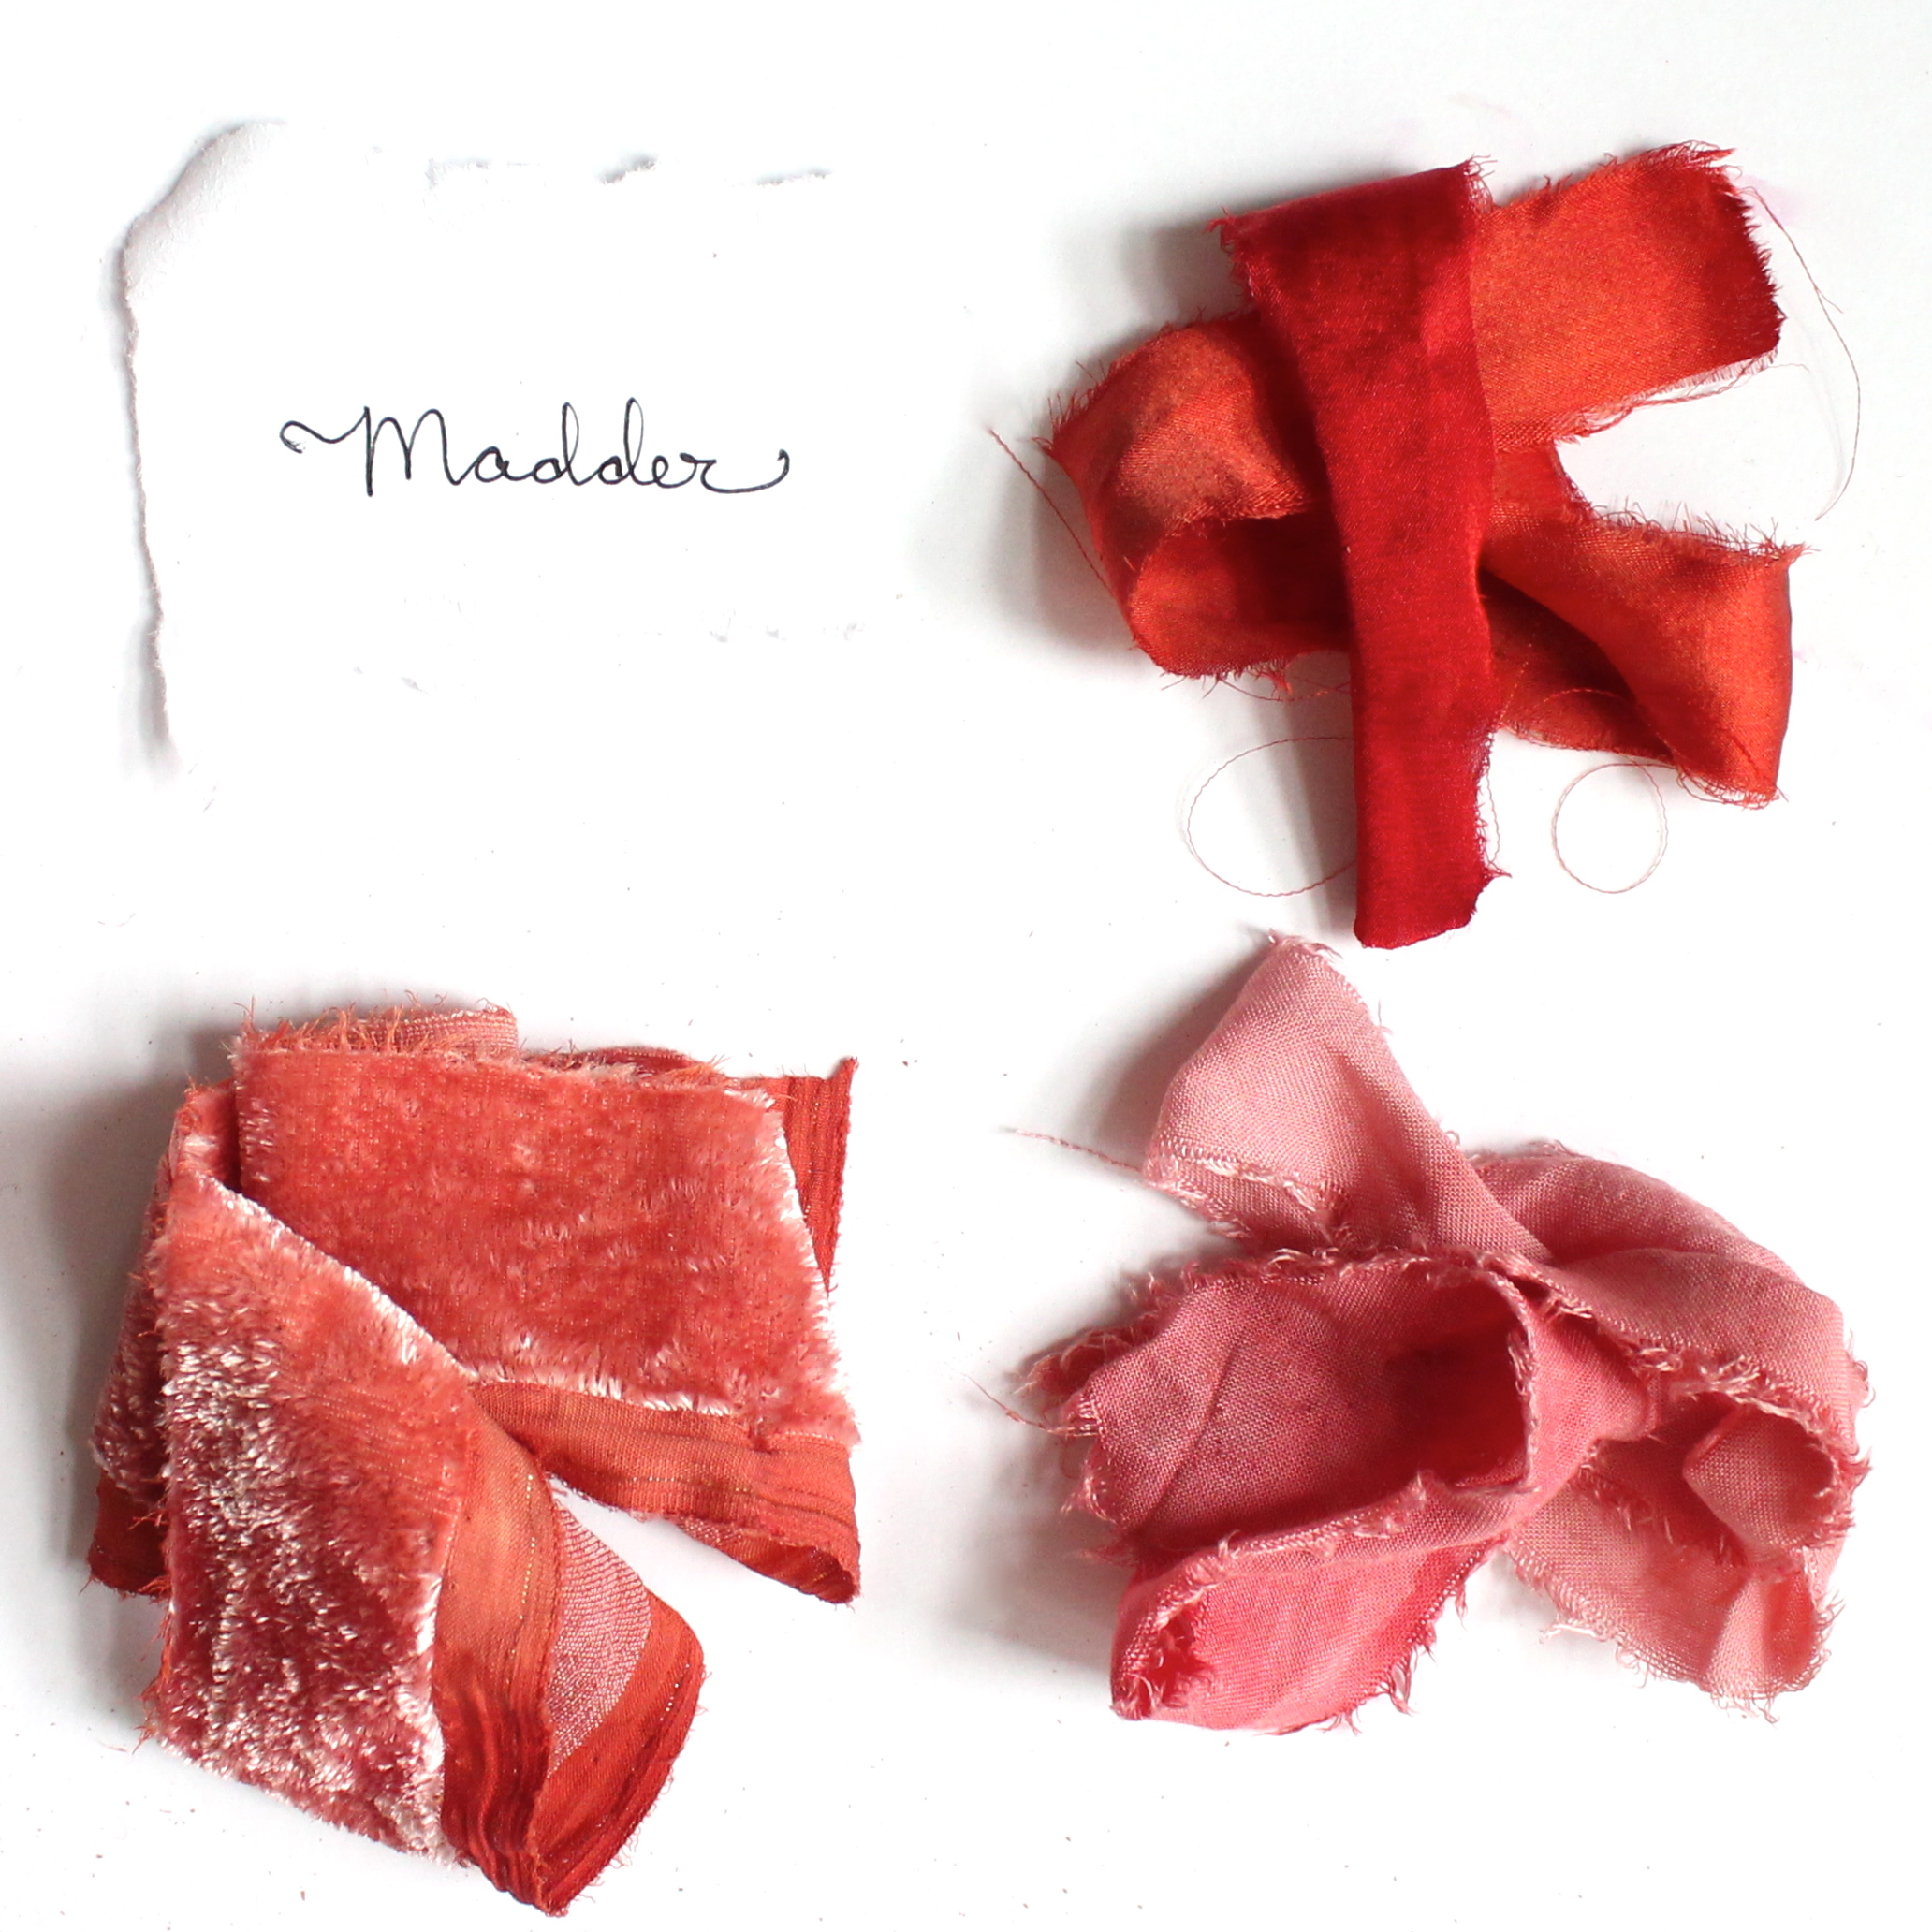 Madder.  Madder is a root that grows easily in many conditions. It can yield pinks to a deep, earthy red color.